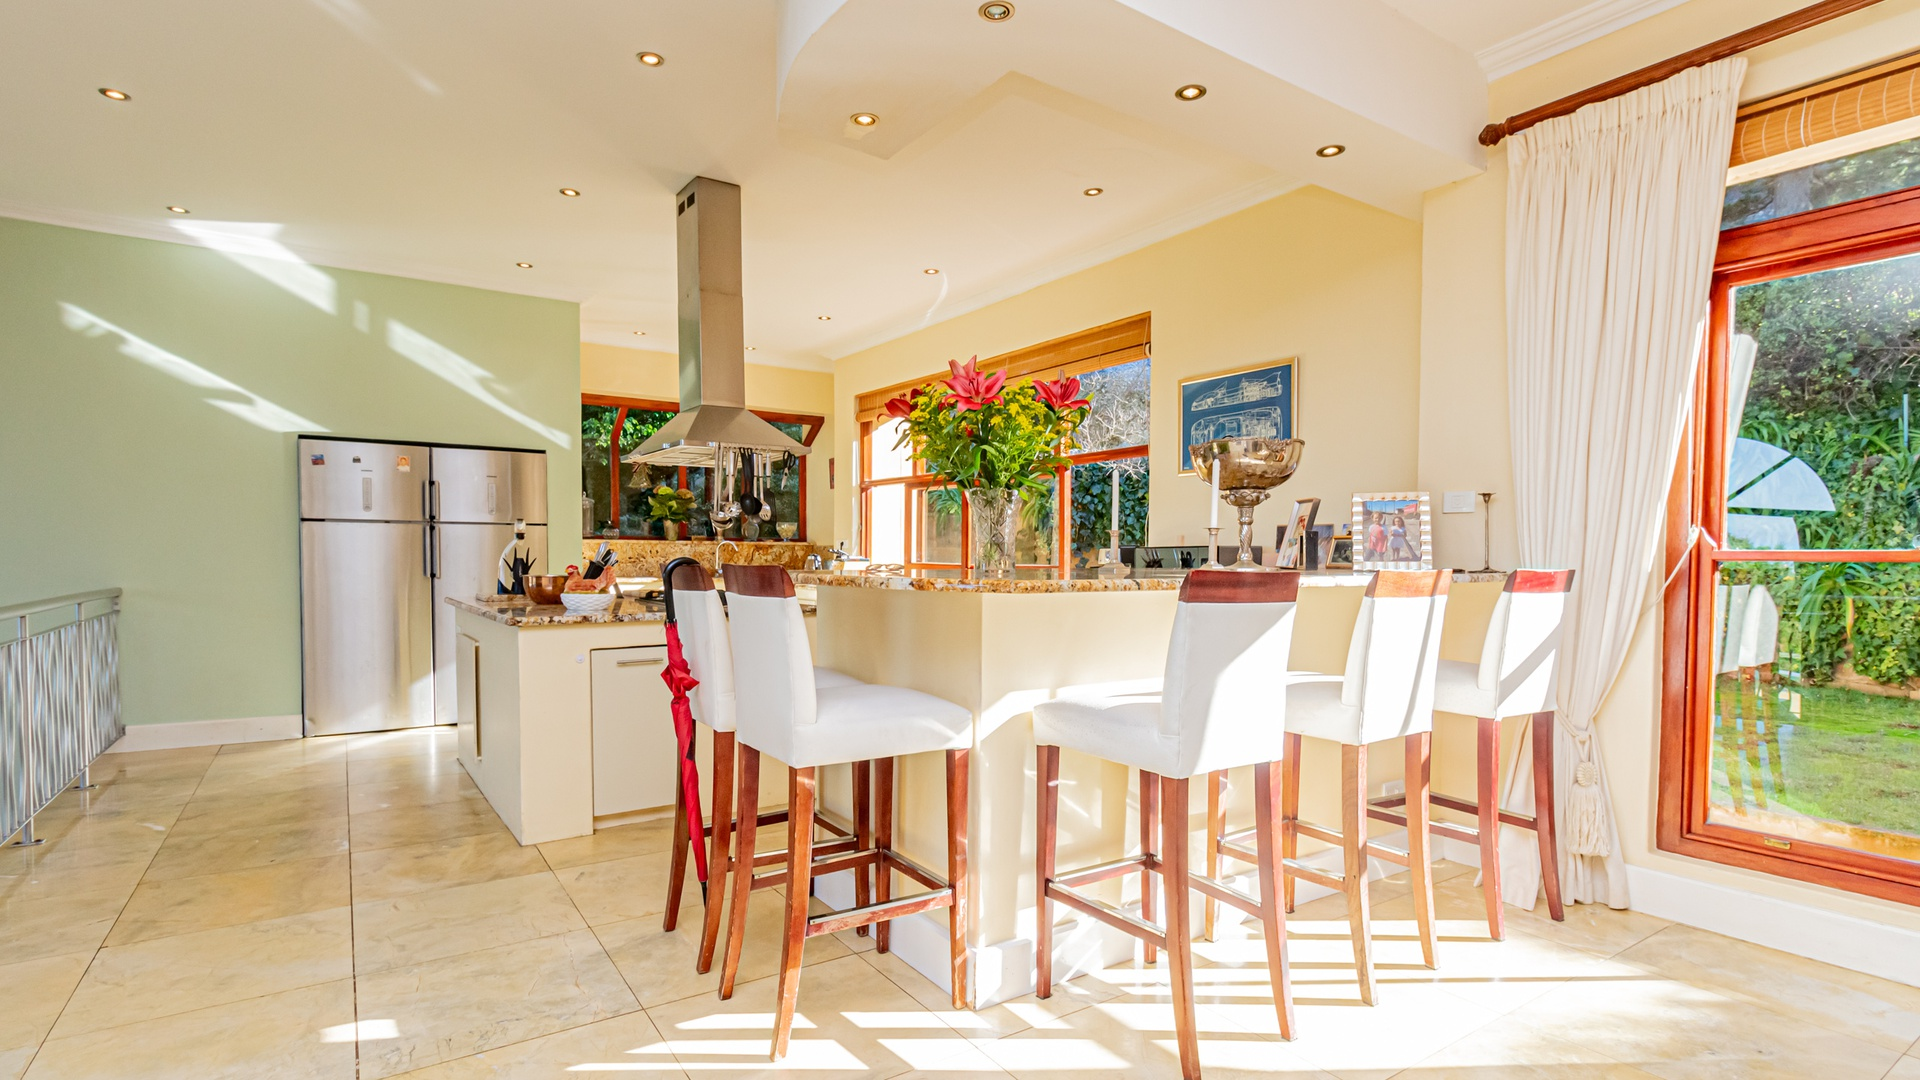 House in Hout Bay - Dining/kitchen